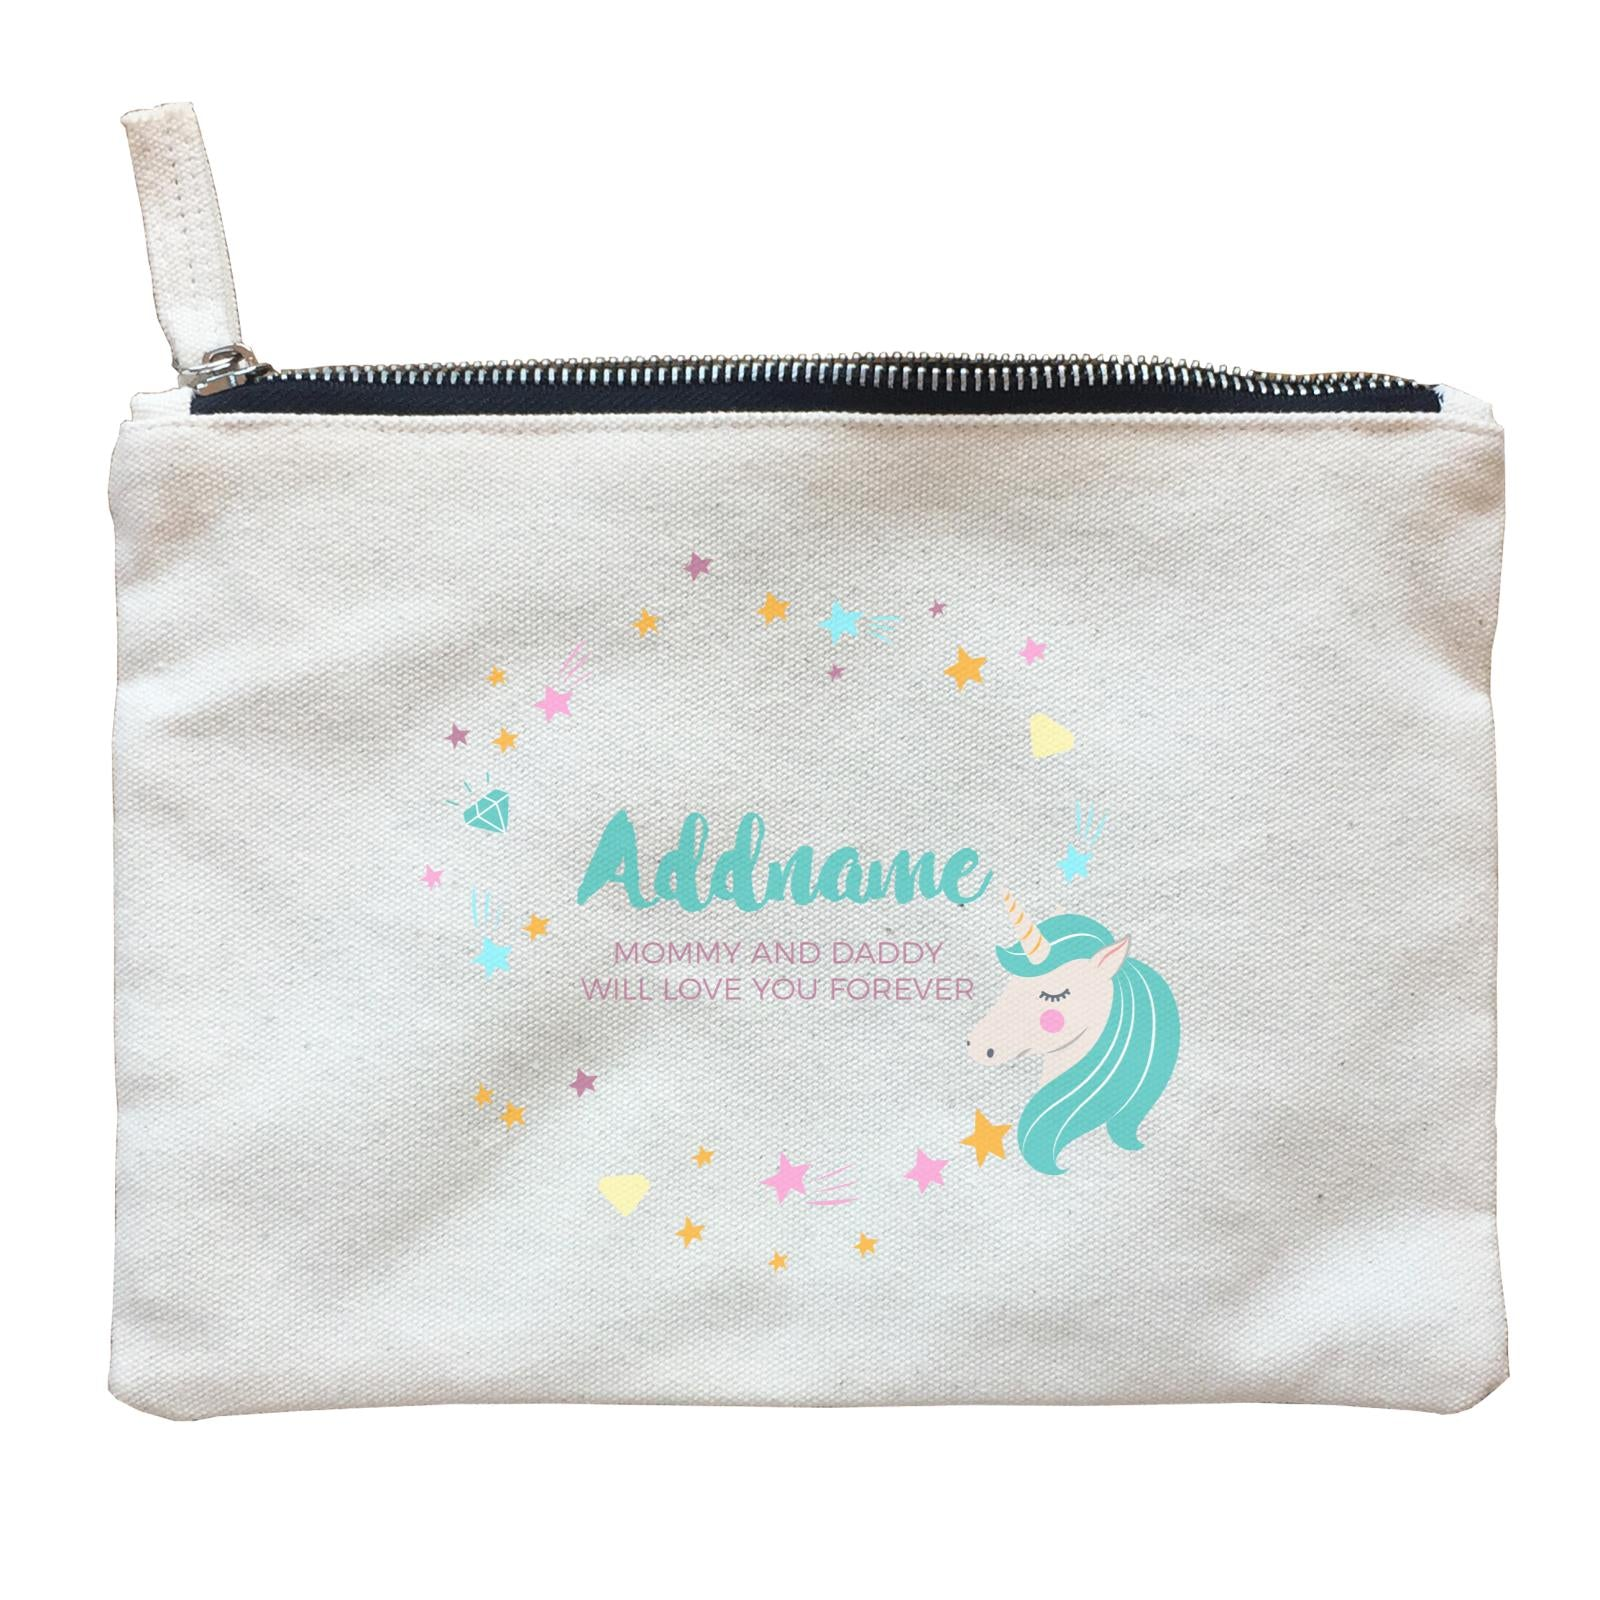 Cute Green Unicorn with Star and Diamond Elements Personalizable with Name and Date Zipper Pouch